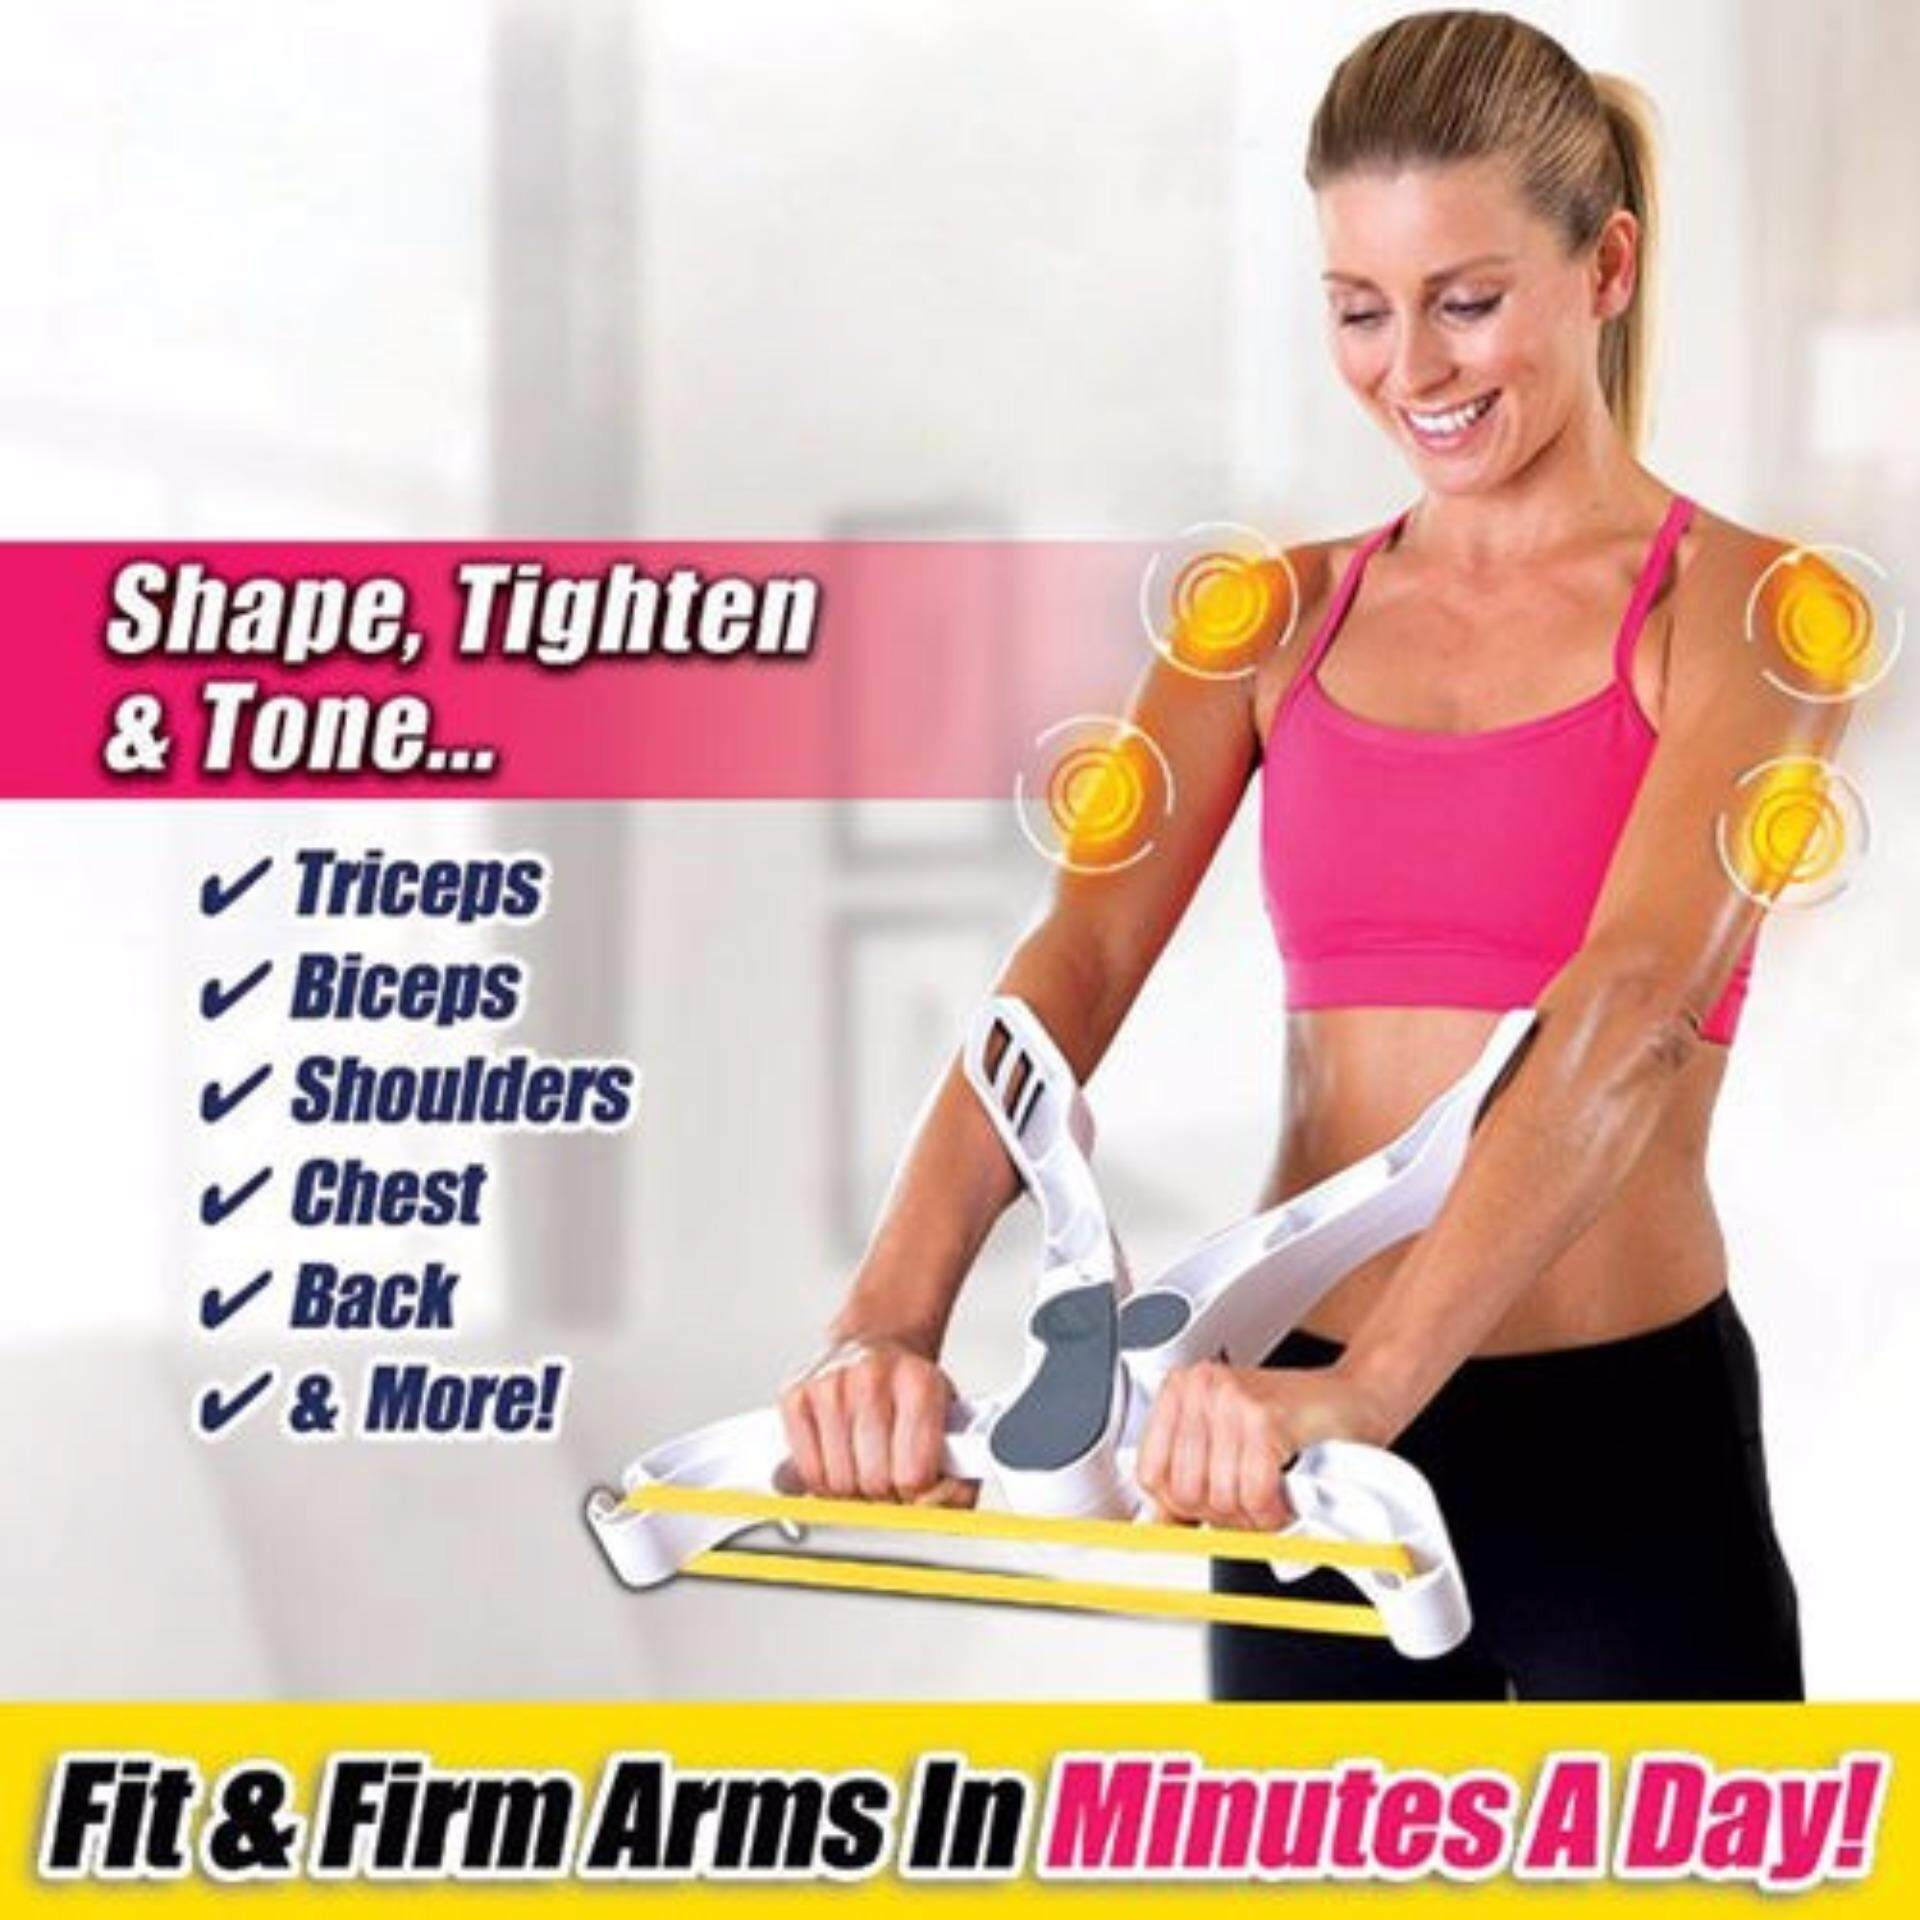 New Wonder Arms Good Figure Fitness System Arm Upper Body Workout Machine